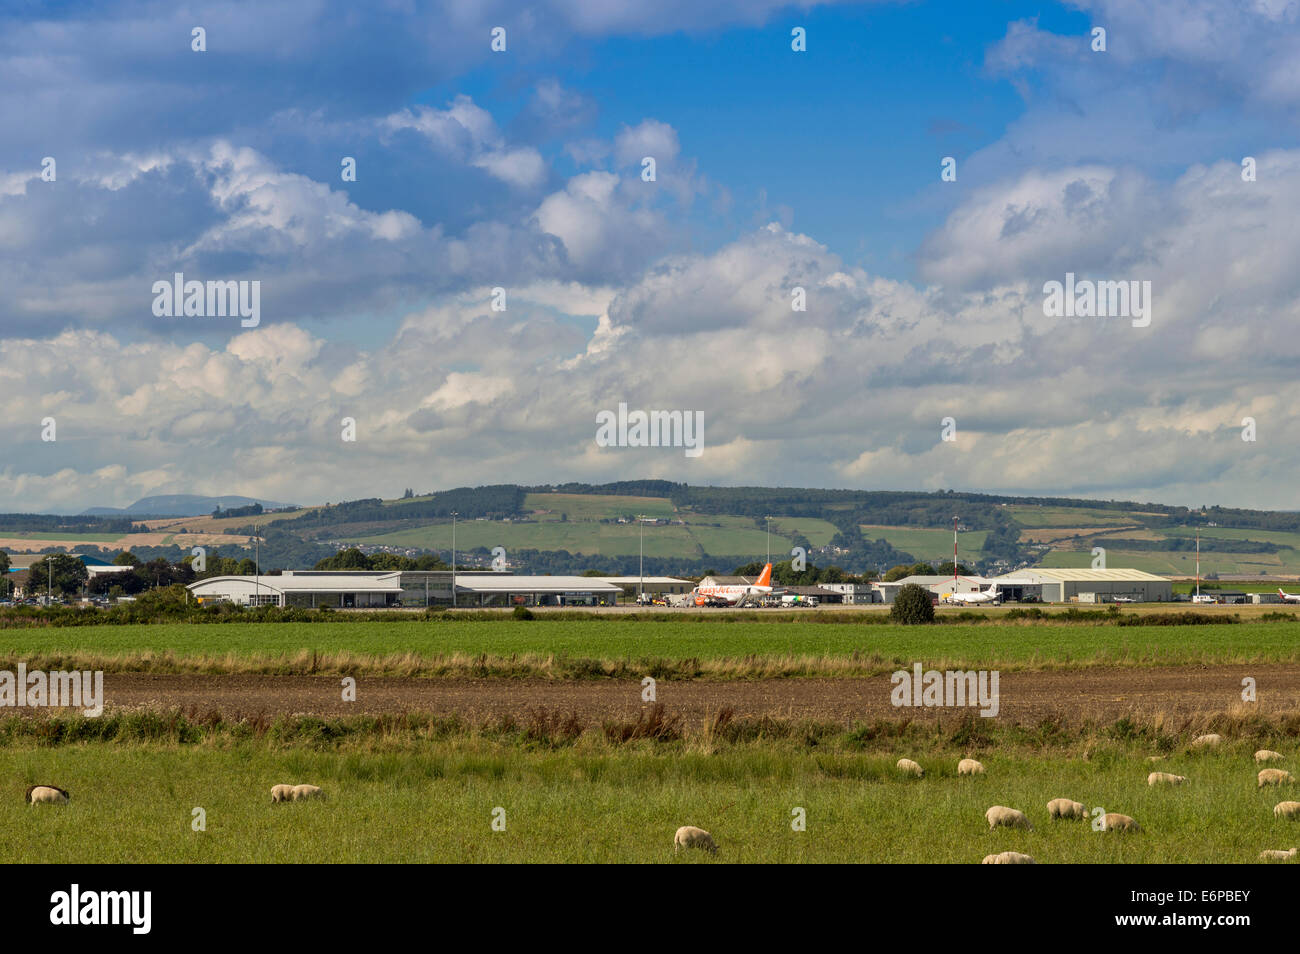 INVERNESS DALCROSS AIRPORT SCOTLAND AND FIELD WITH SHEEP - Stock Image